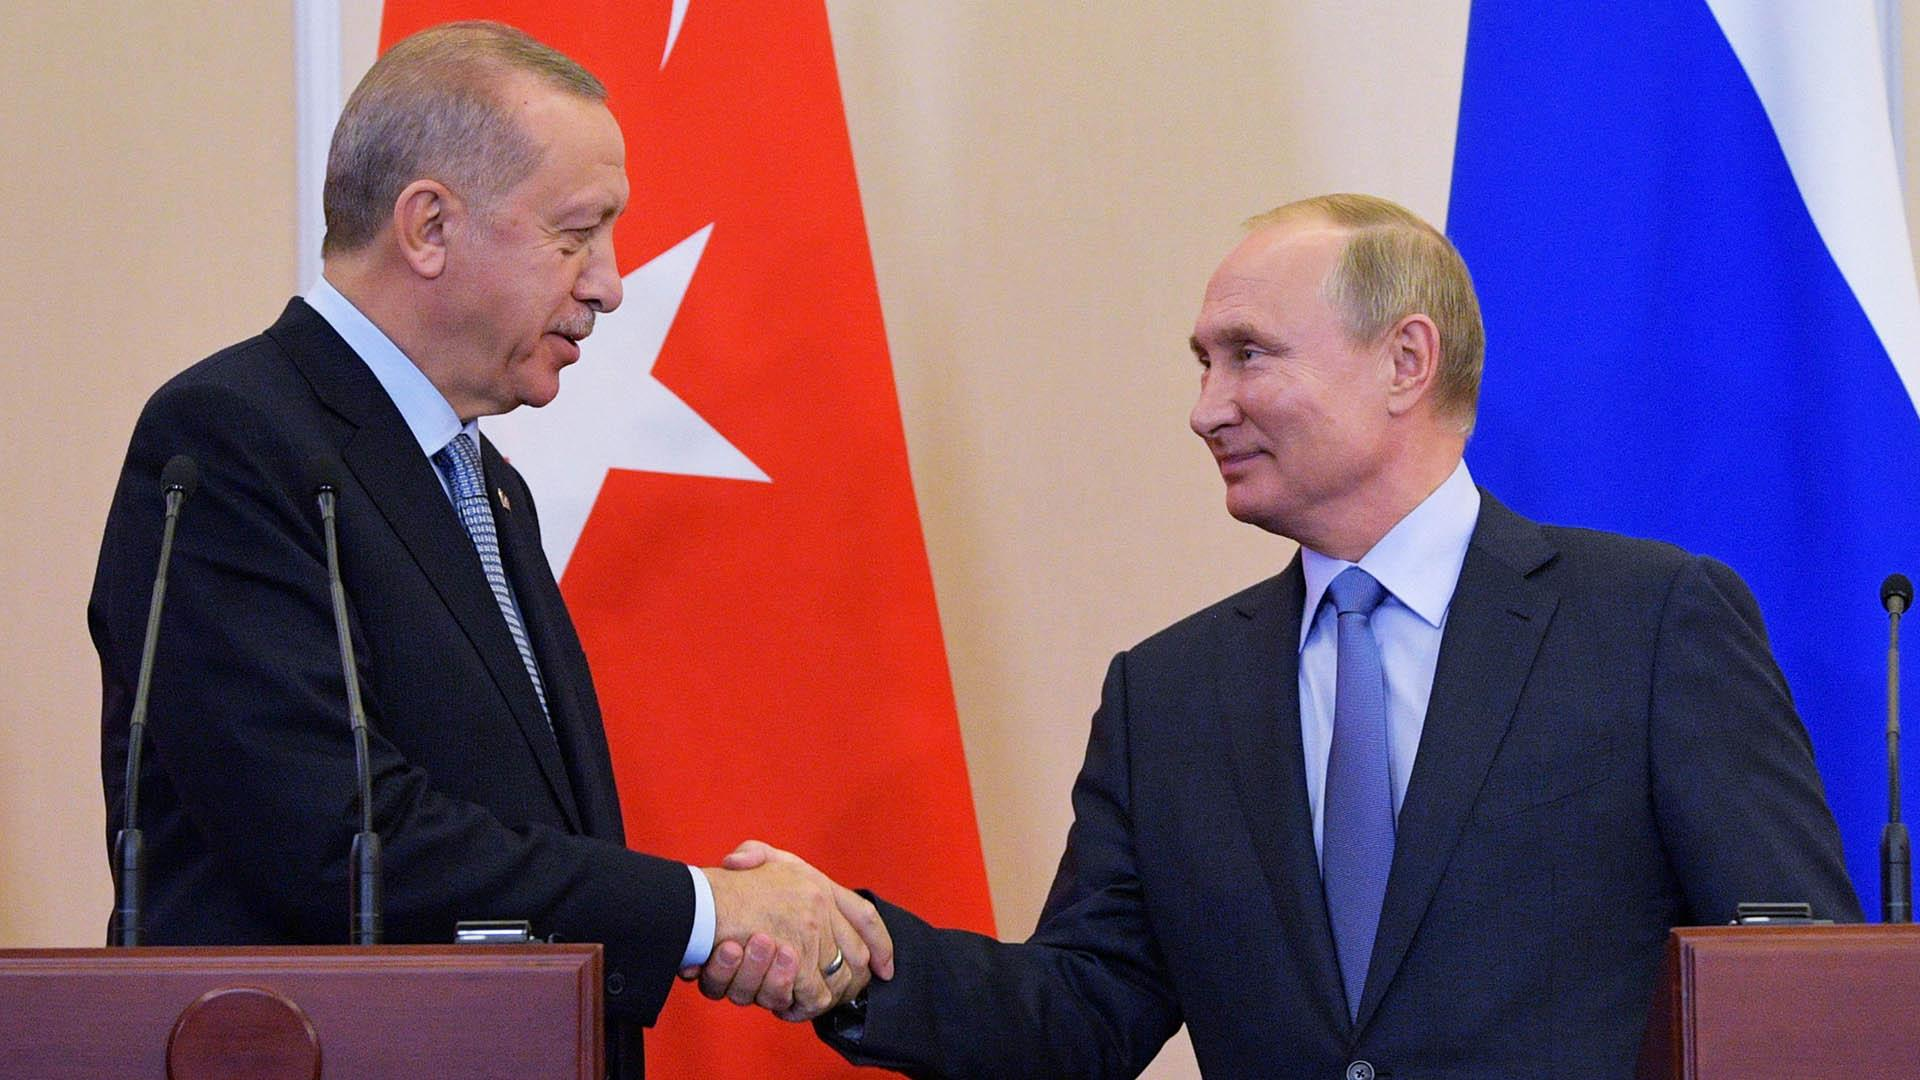 Putin and Erdogan meeting, Russia and Turkey strike a deal in northern Syria